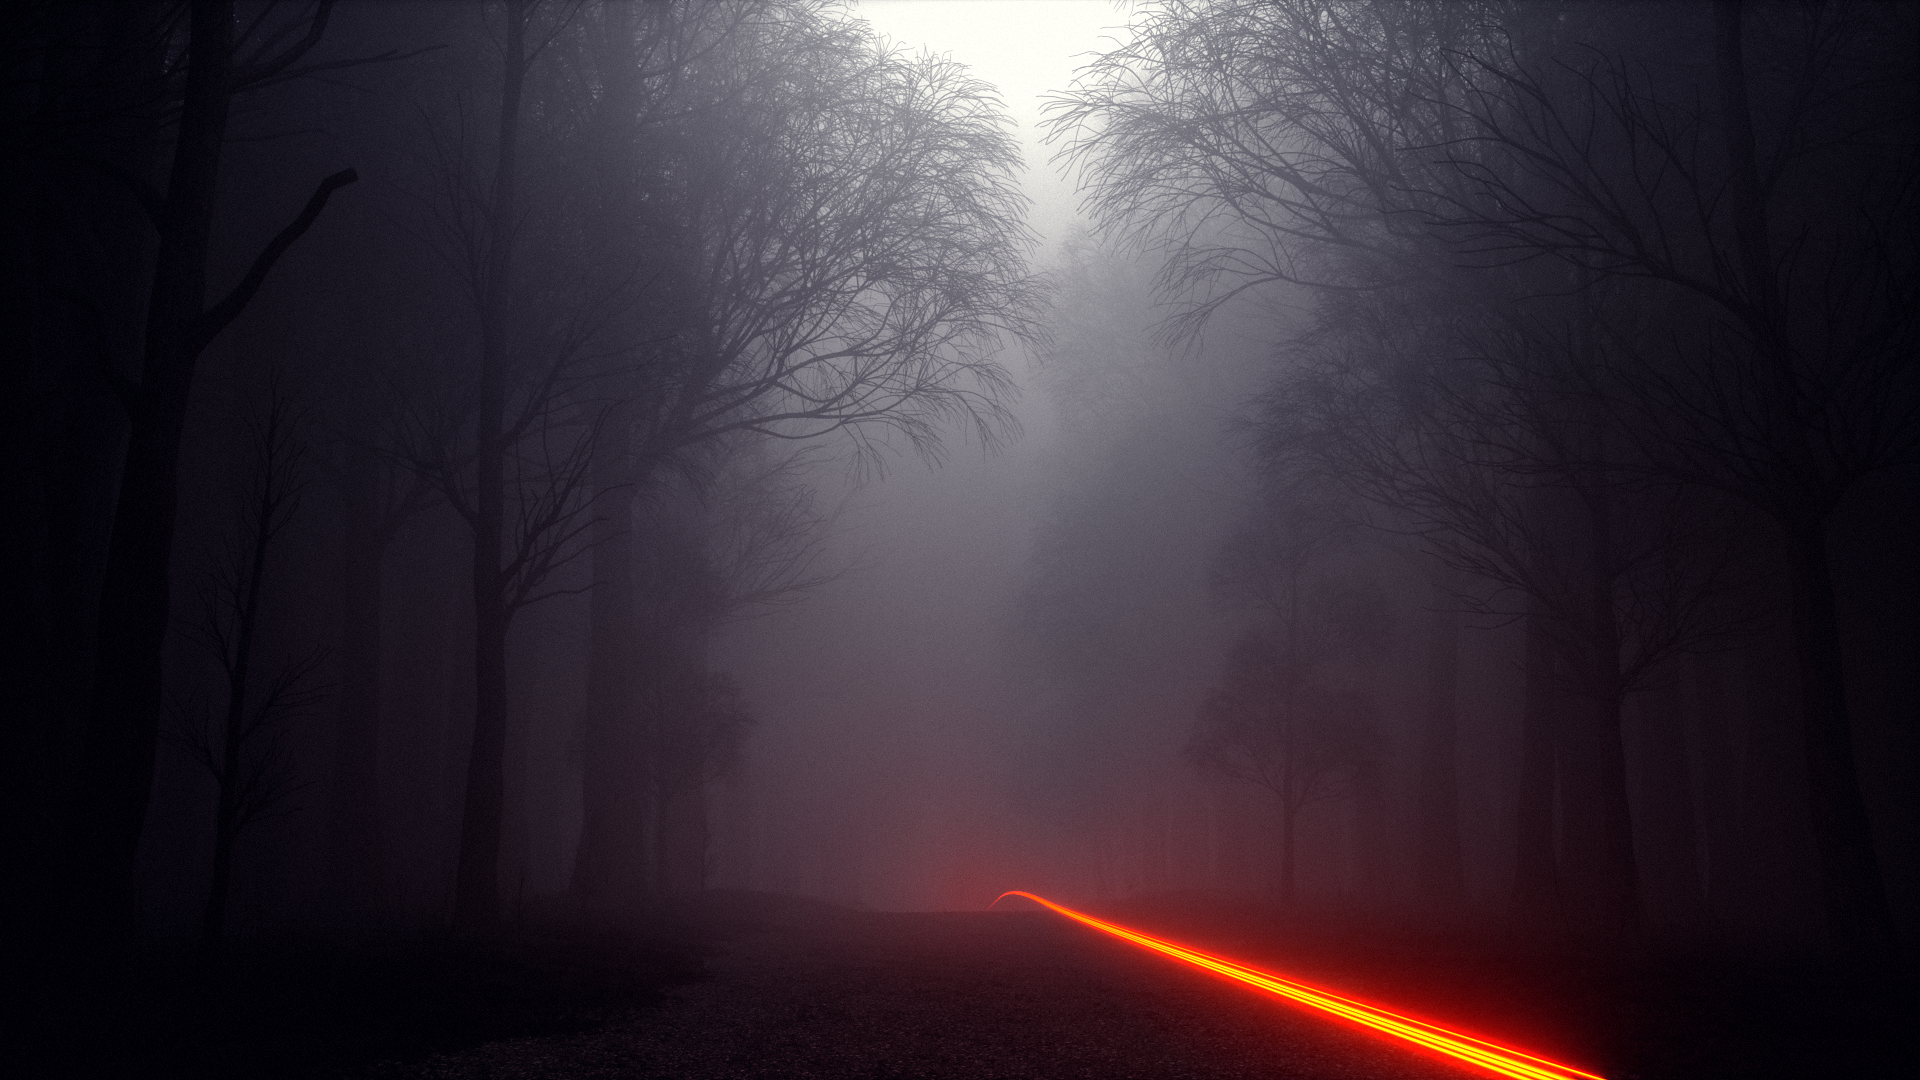 Volume Rendering with Octane Render for Cinema 4D - Foggy Forest #1